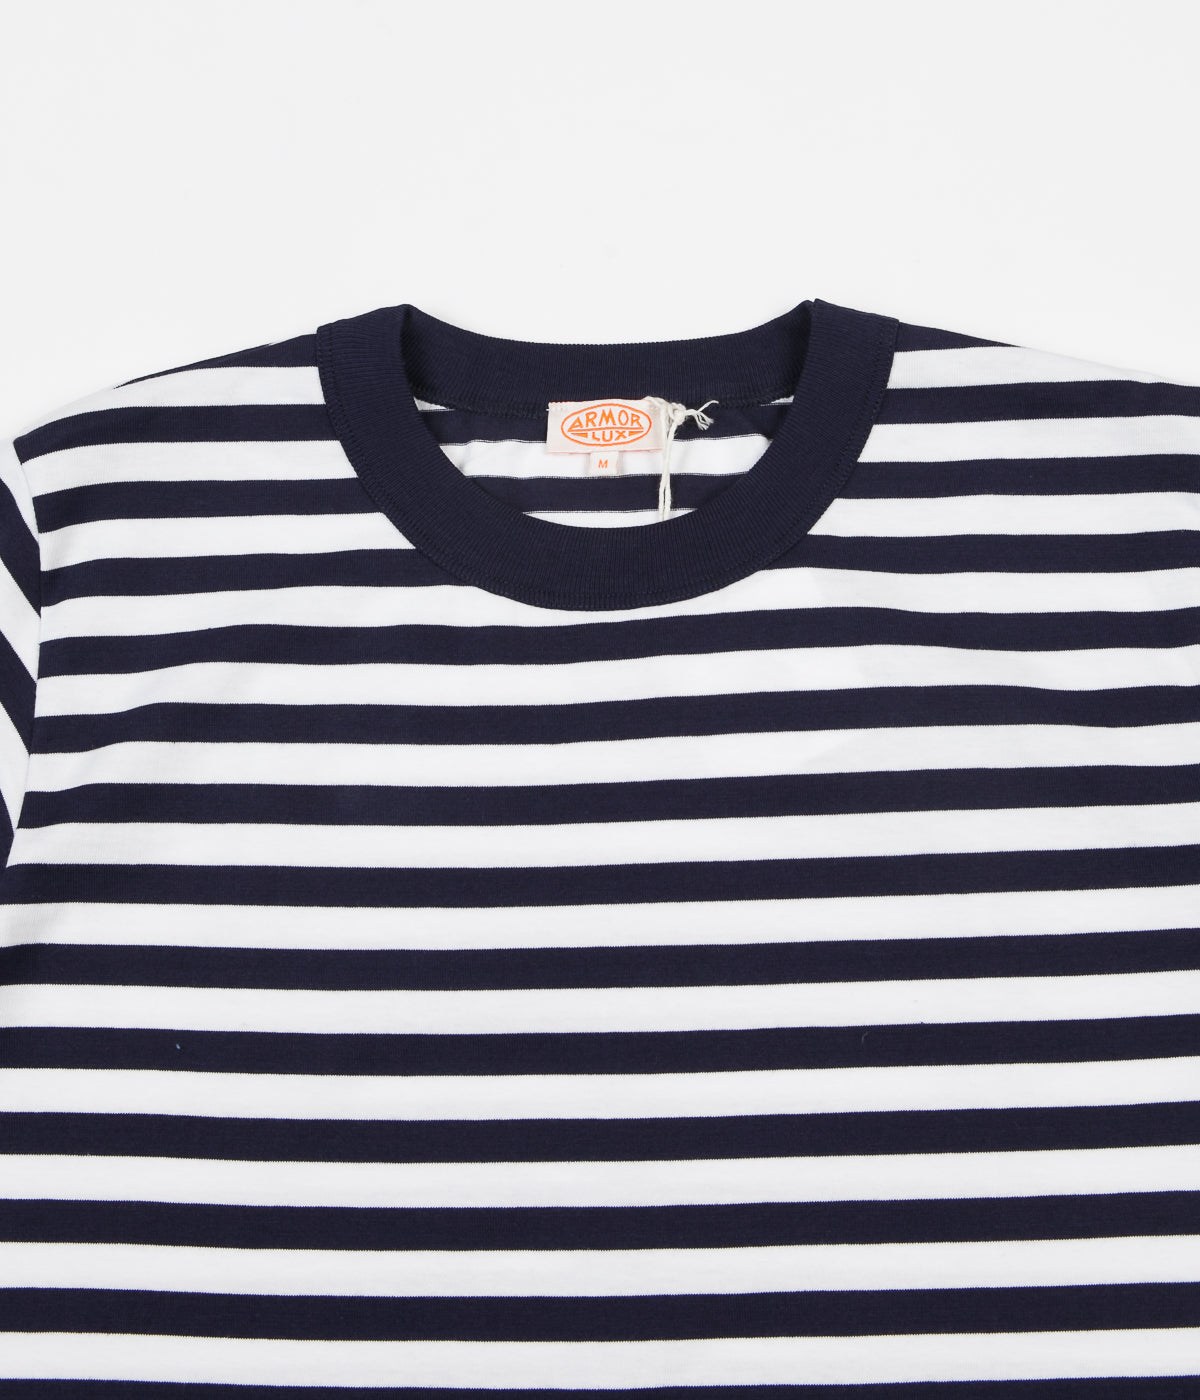 Armor Lux Heritage Striped Heavy Cotton T-Shirt - Navy / White